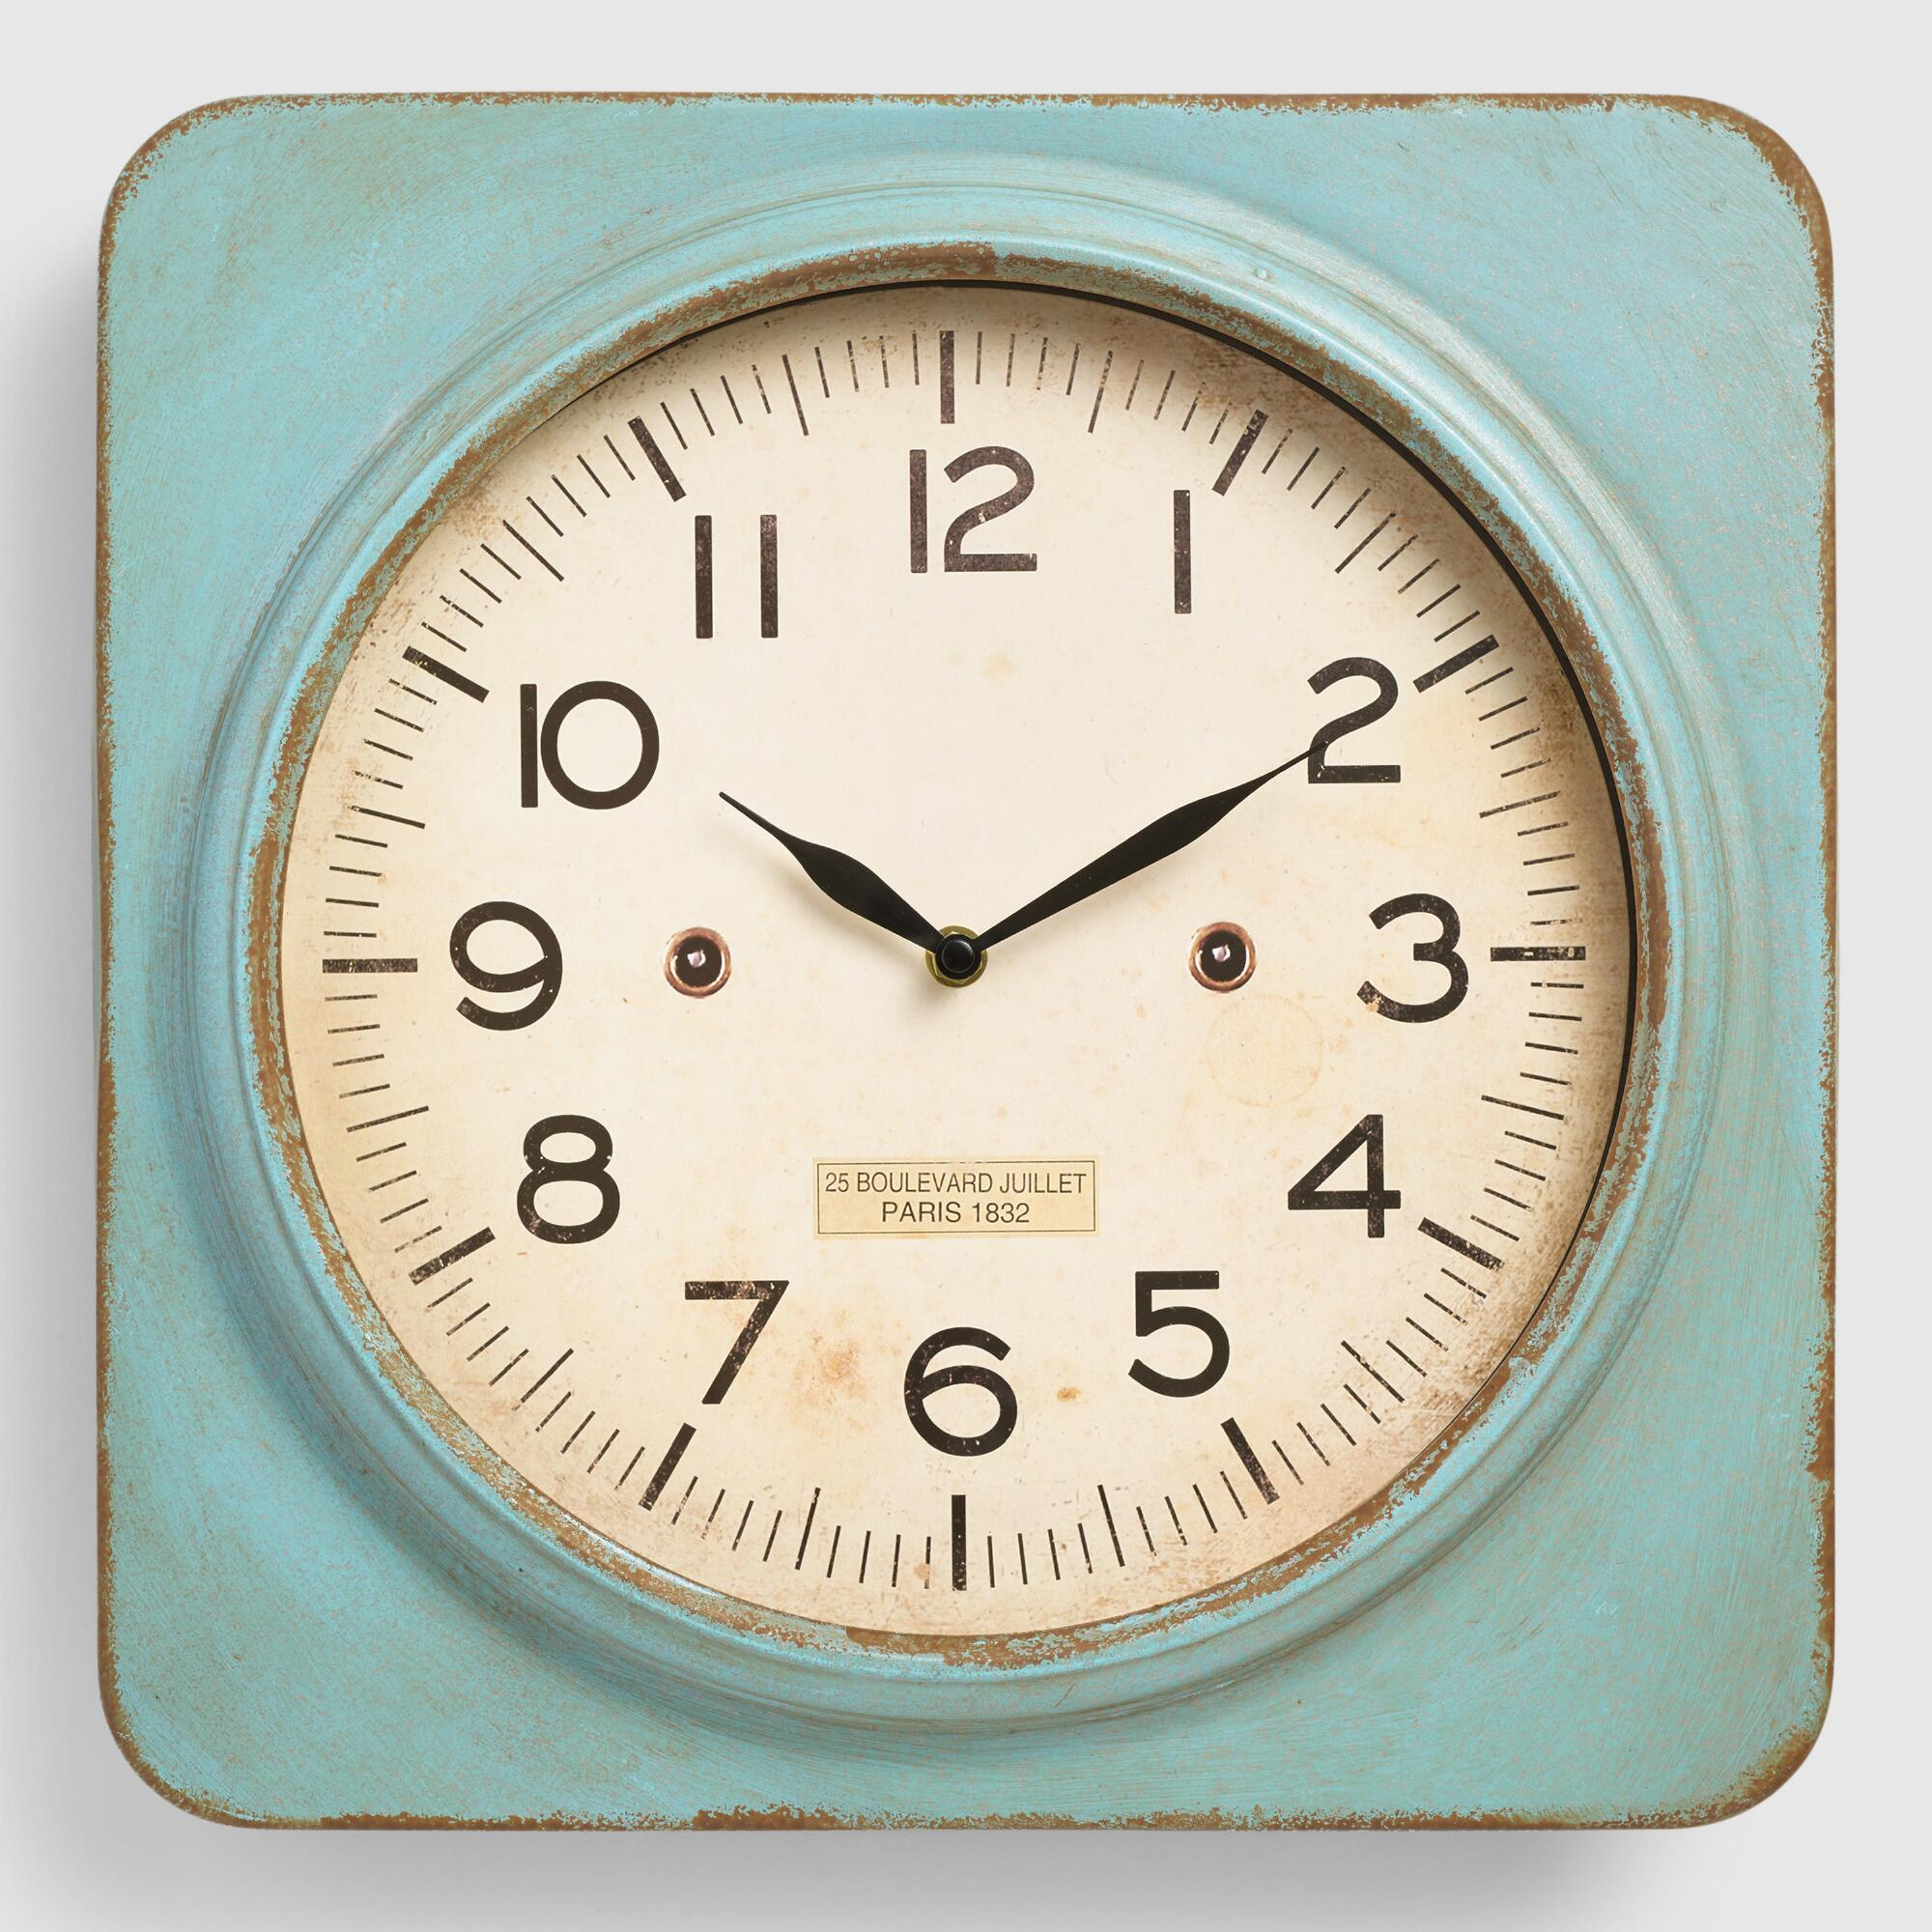 xxx vtifwidcvtjpegclocks aquametalsquarewallclock : small bathroom clock